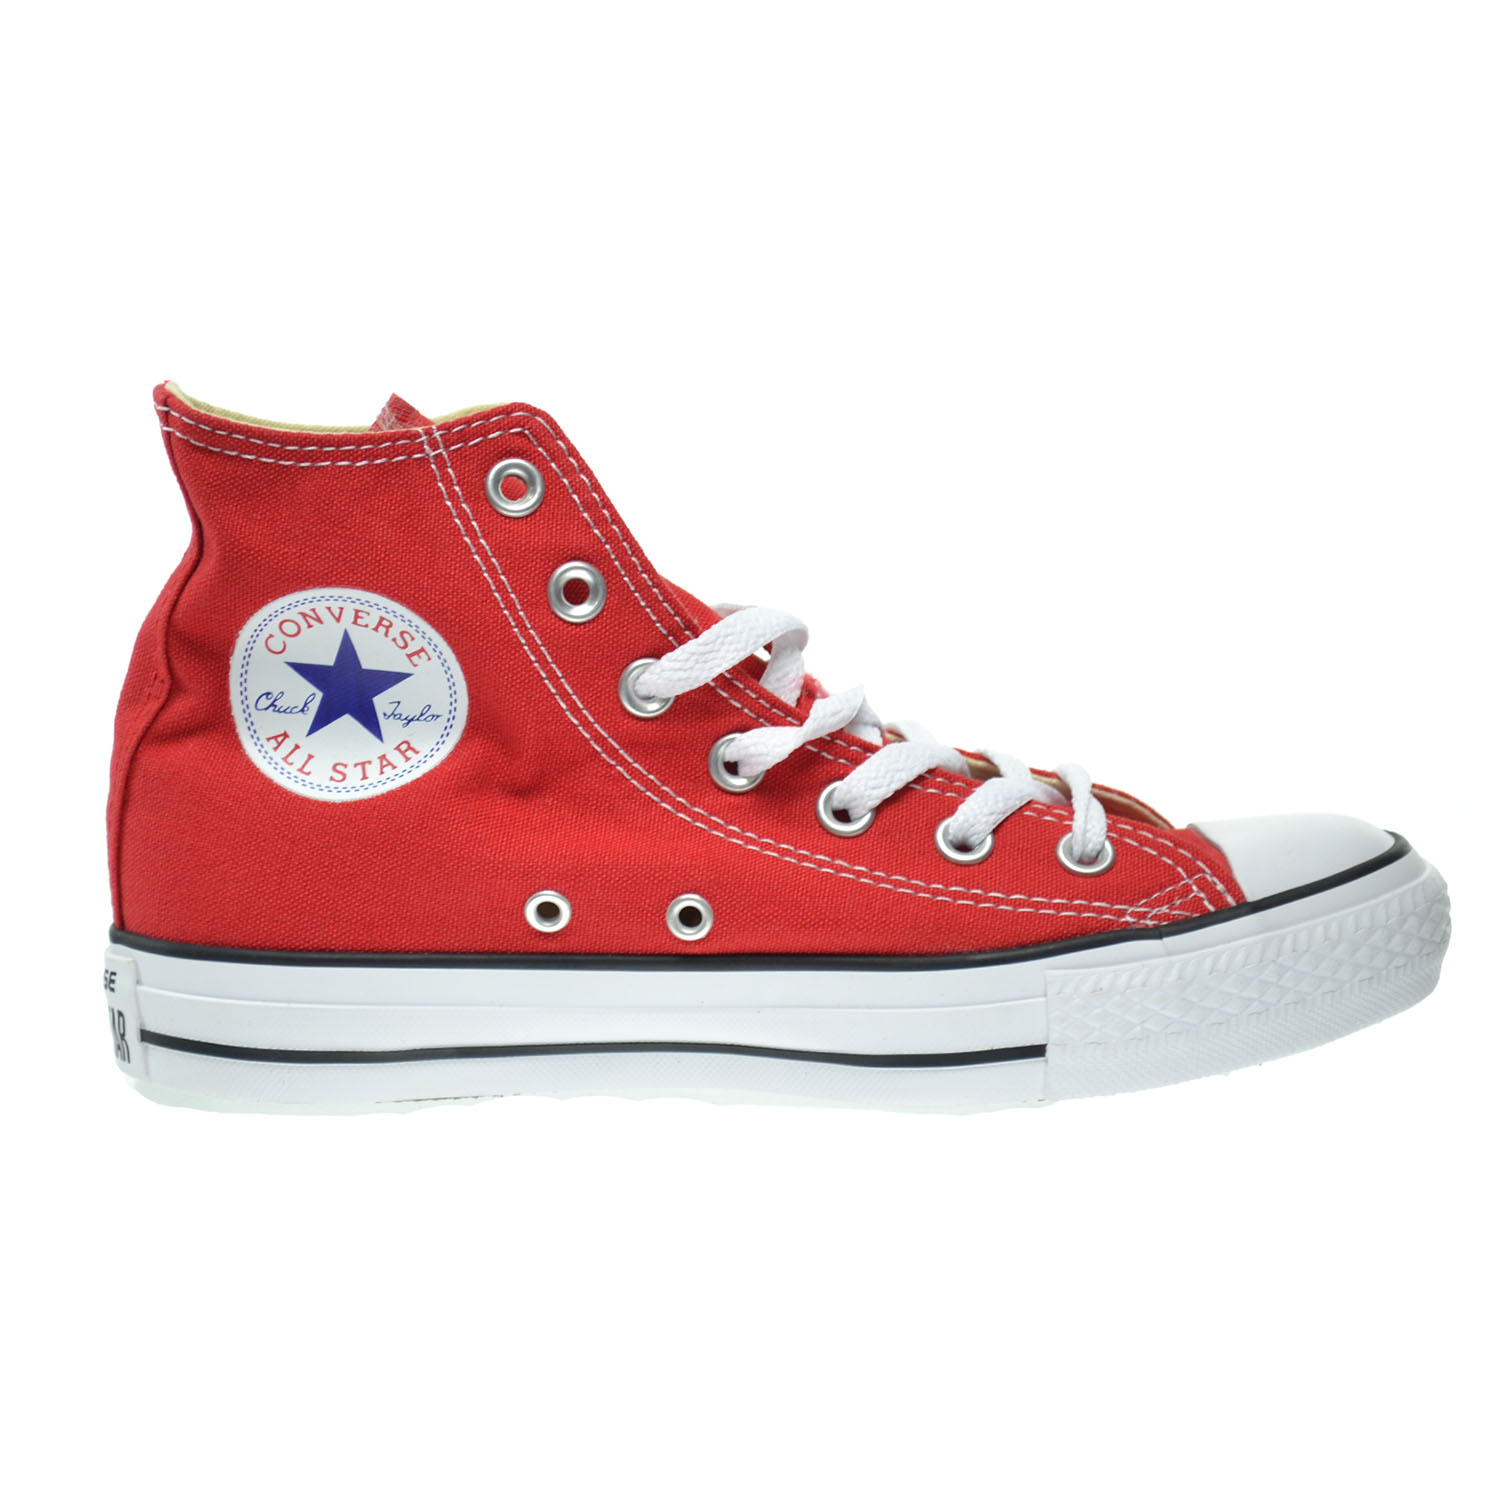 Converse Chuck Taylor All Star High Top Unisex Shoes Red m9621 by Converse